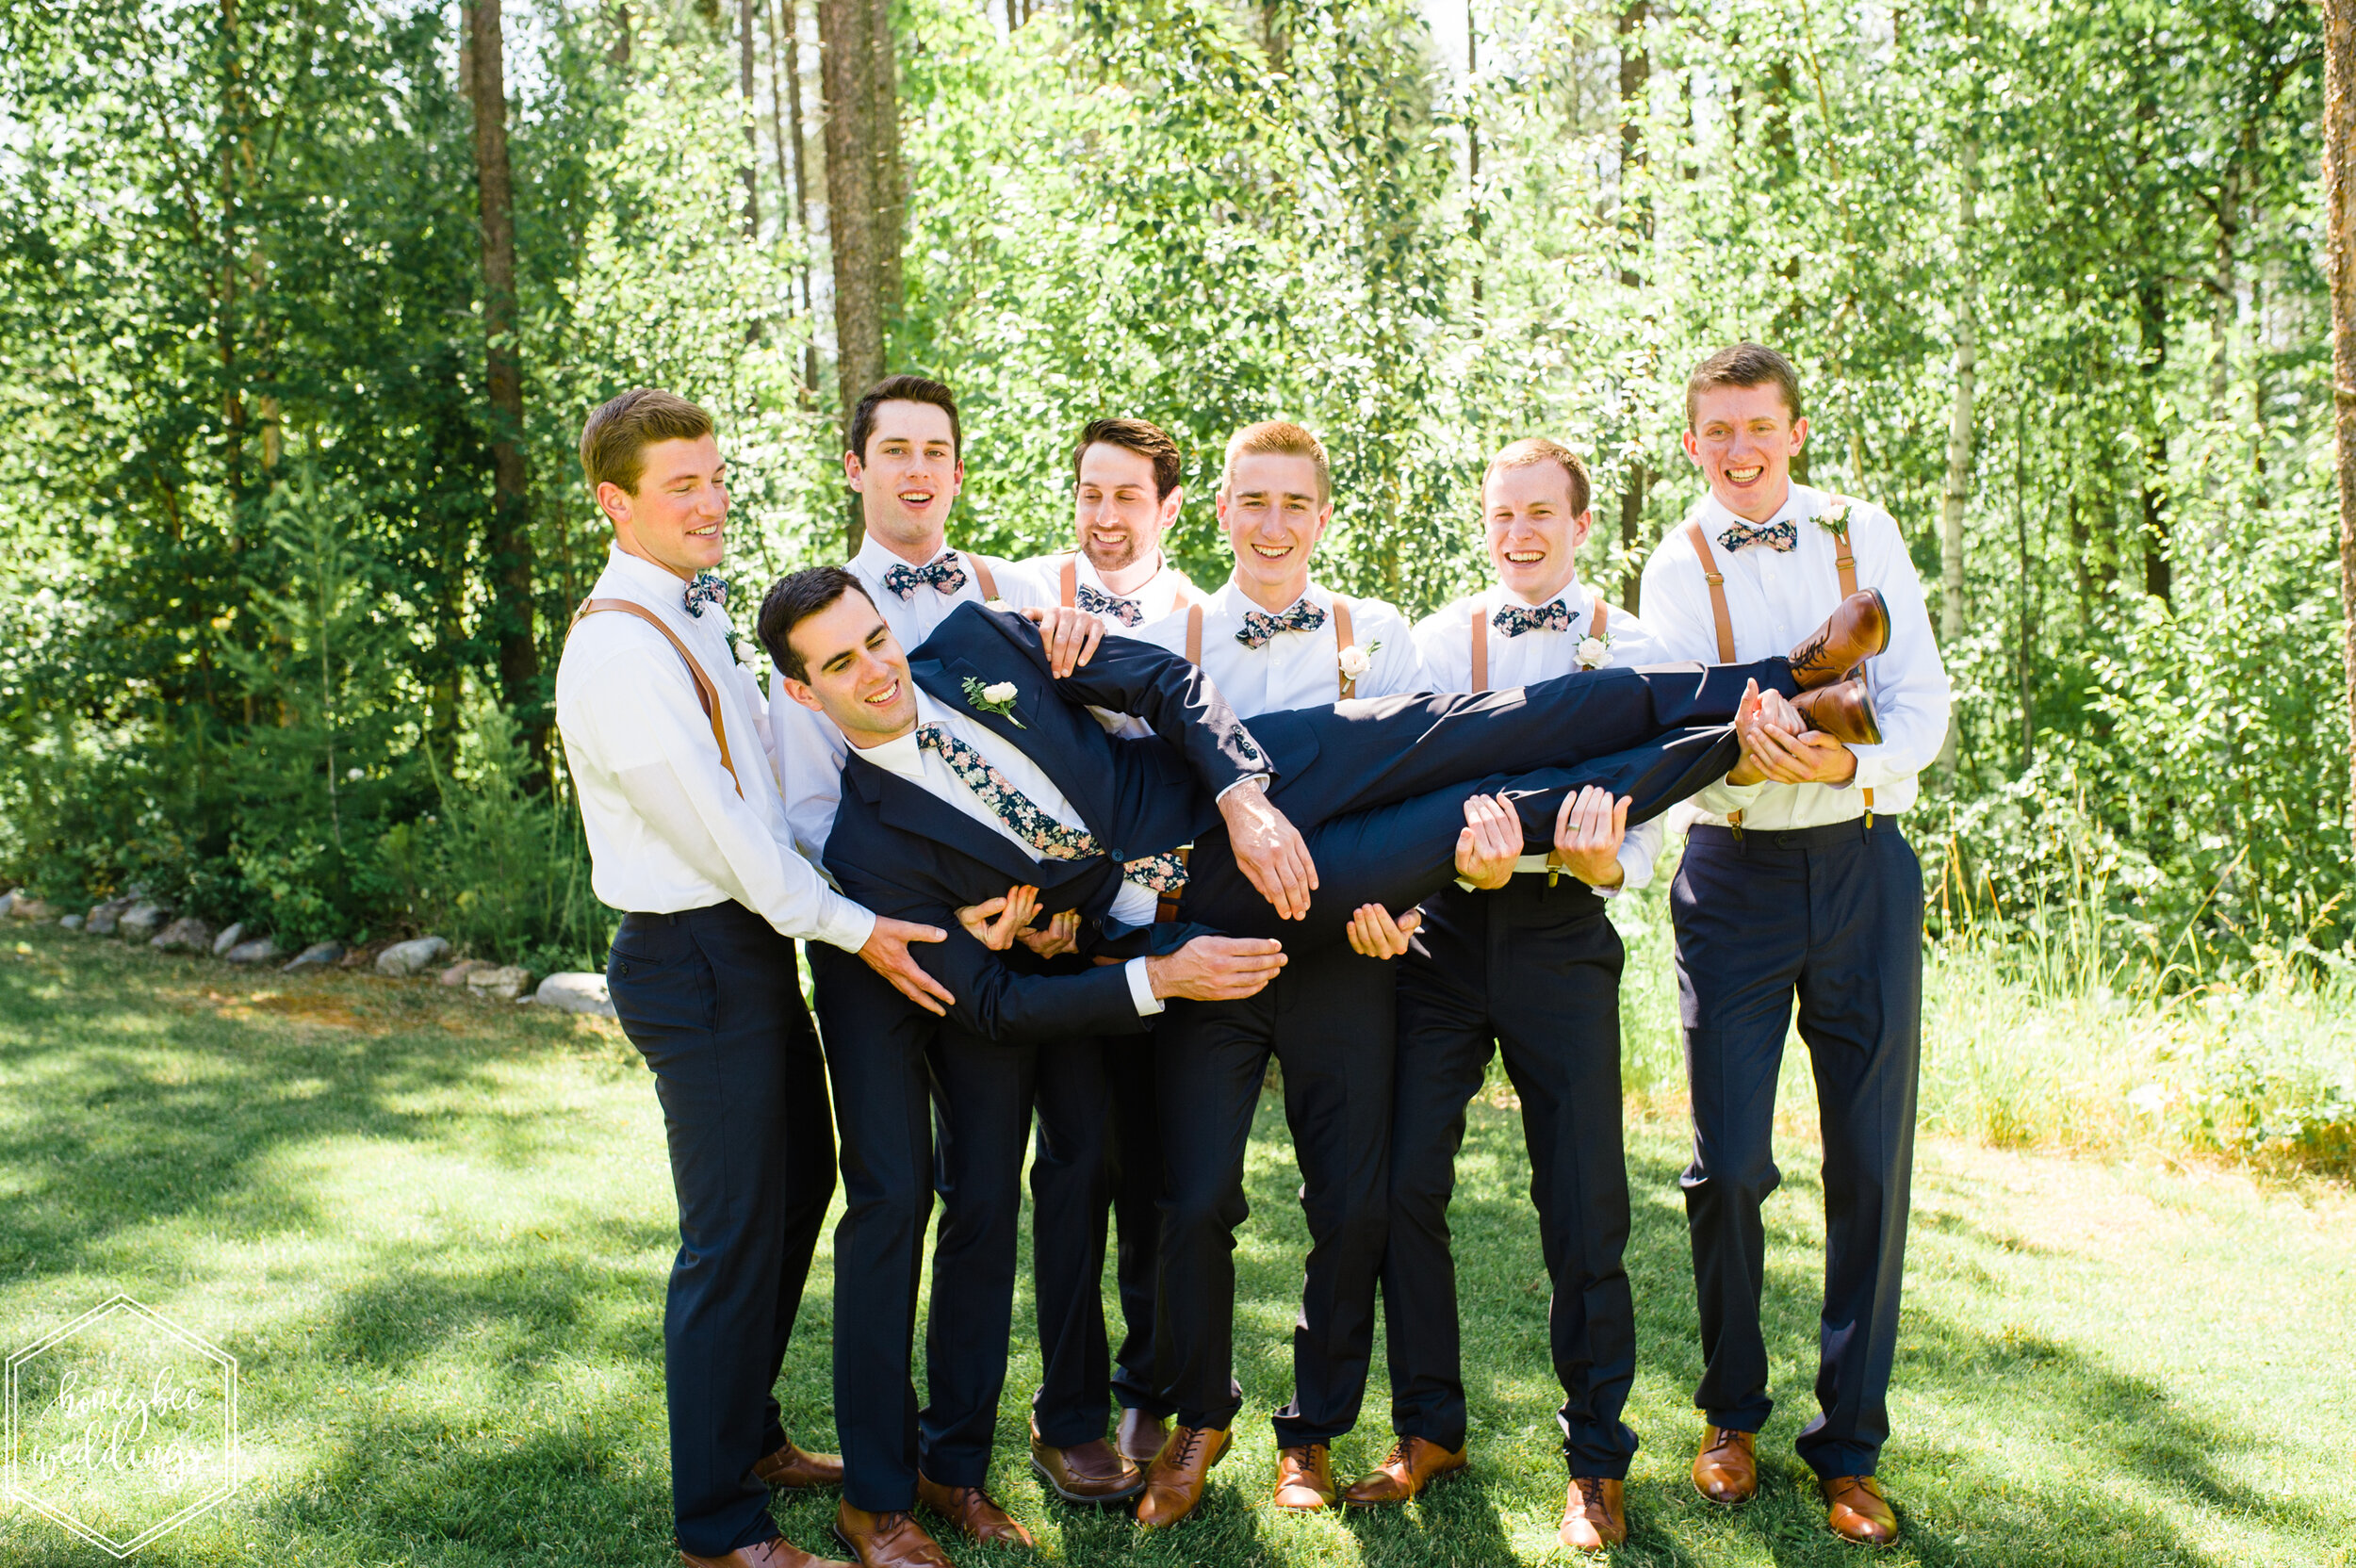 068Glacier National Park Wedding_Glacier Outdoor Center_Honeybee Weddings_Anna & Seth_July 21, 2019-1987.jpg